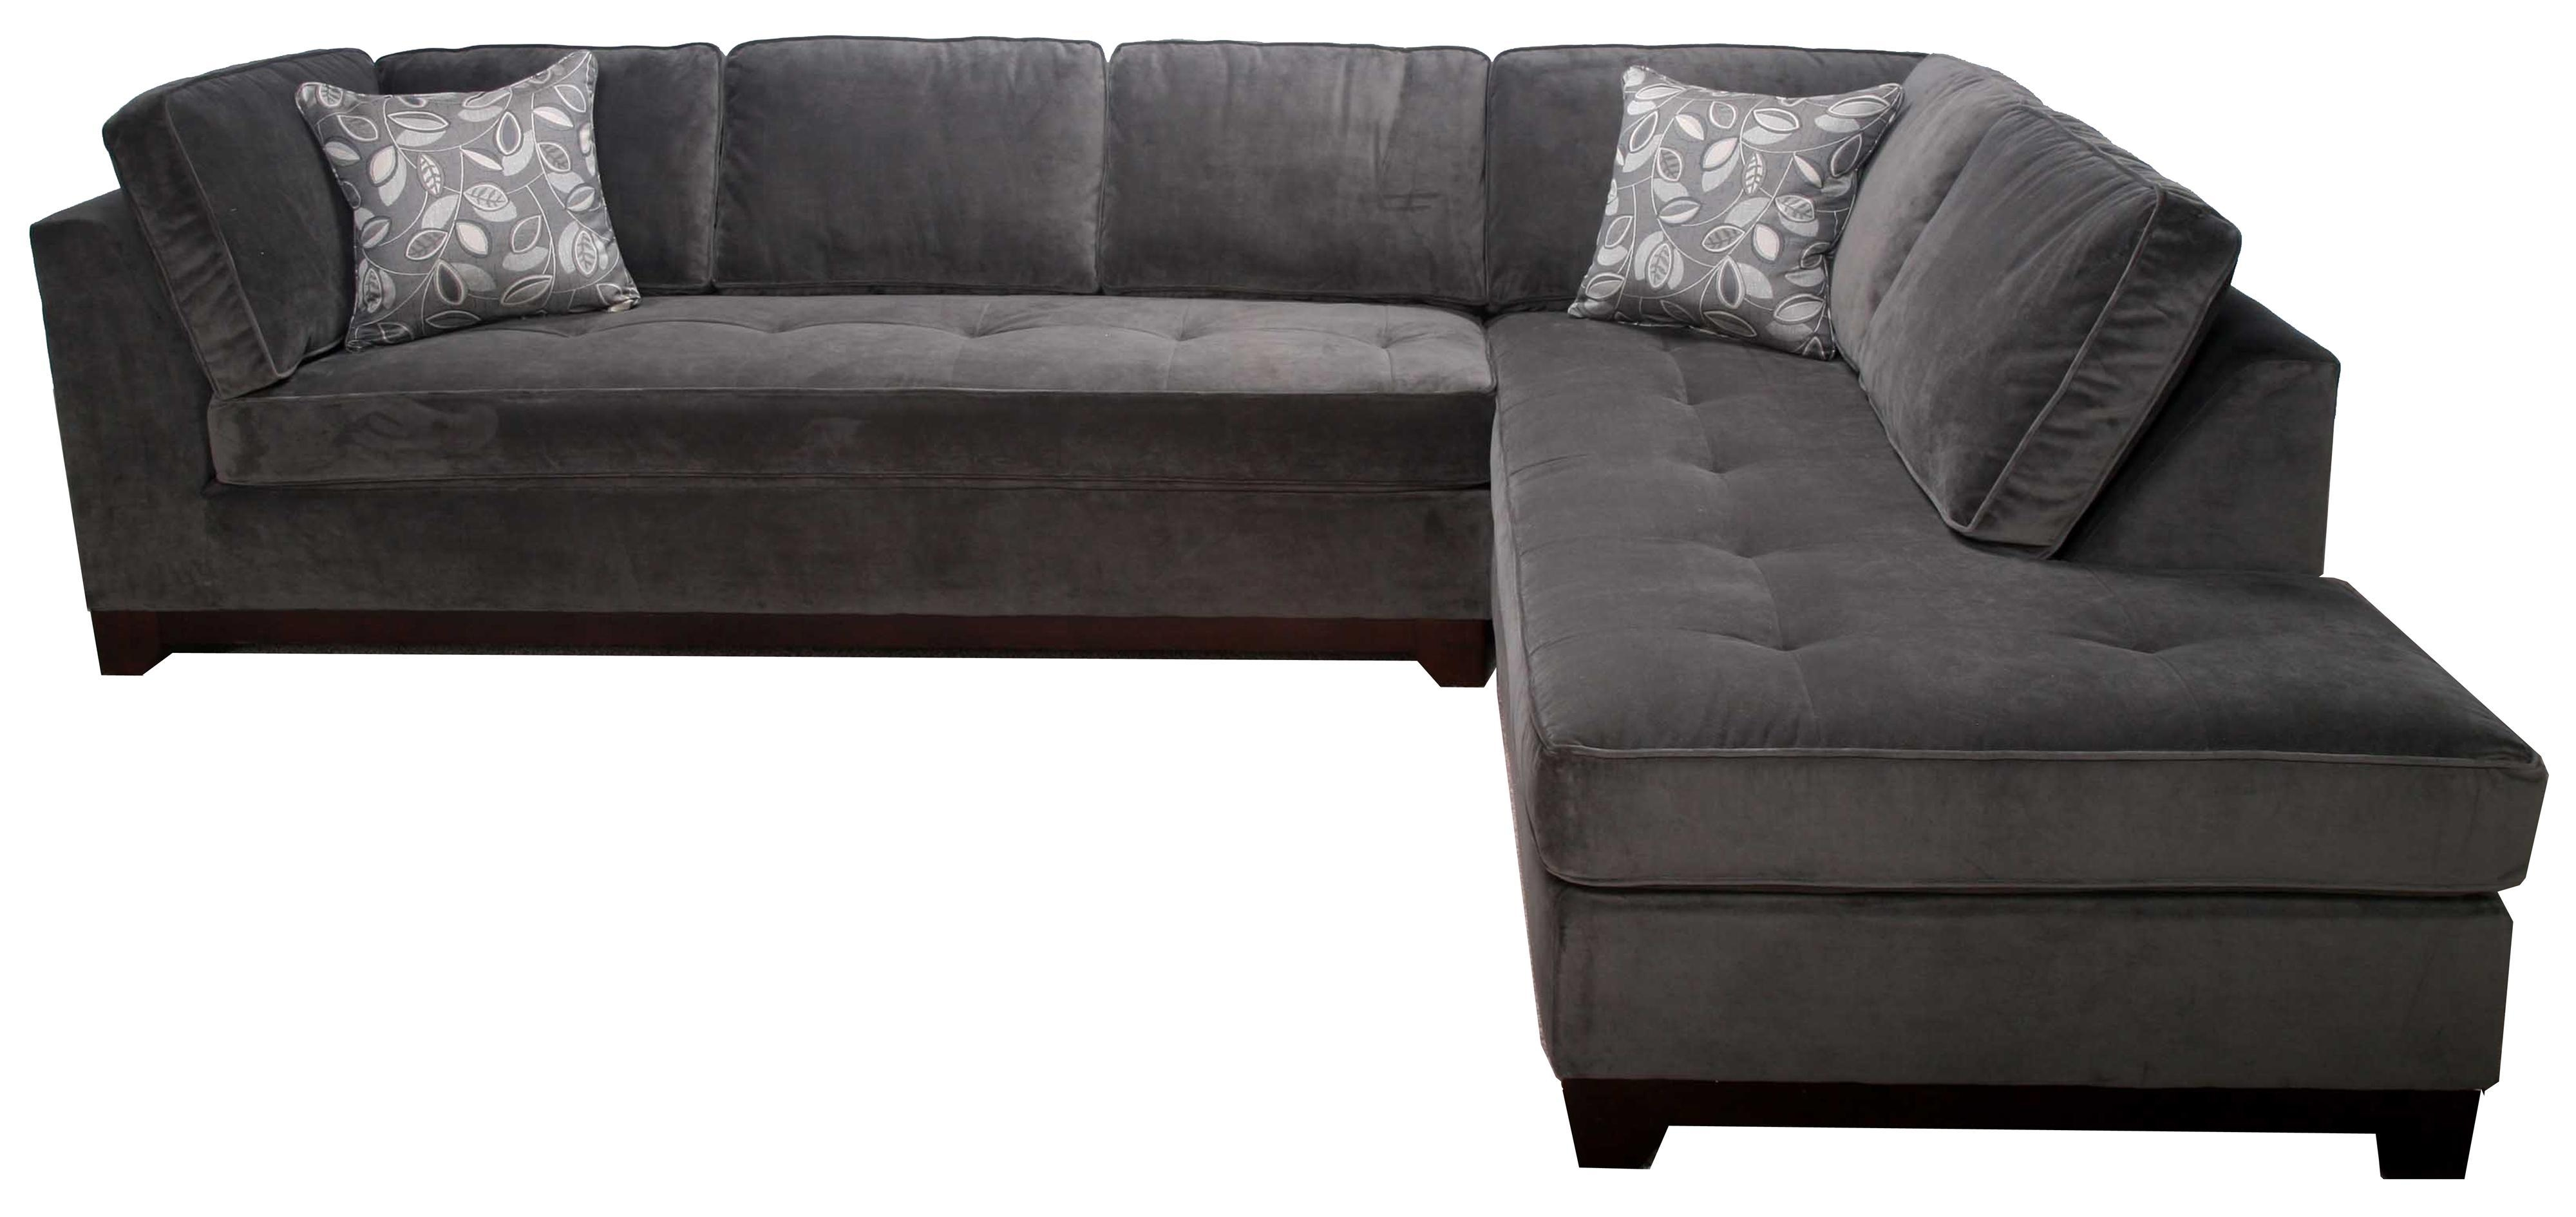 Featured Image of Bauhaus Sectional